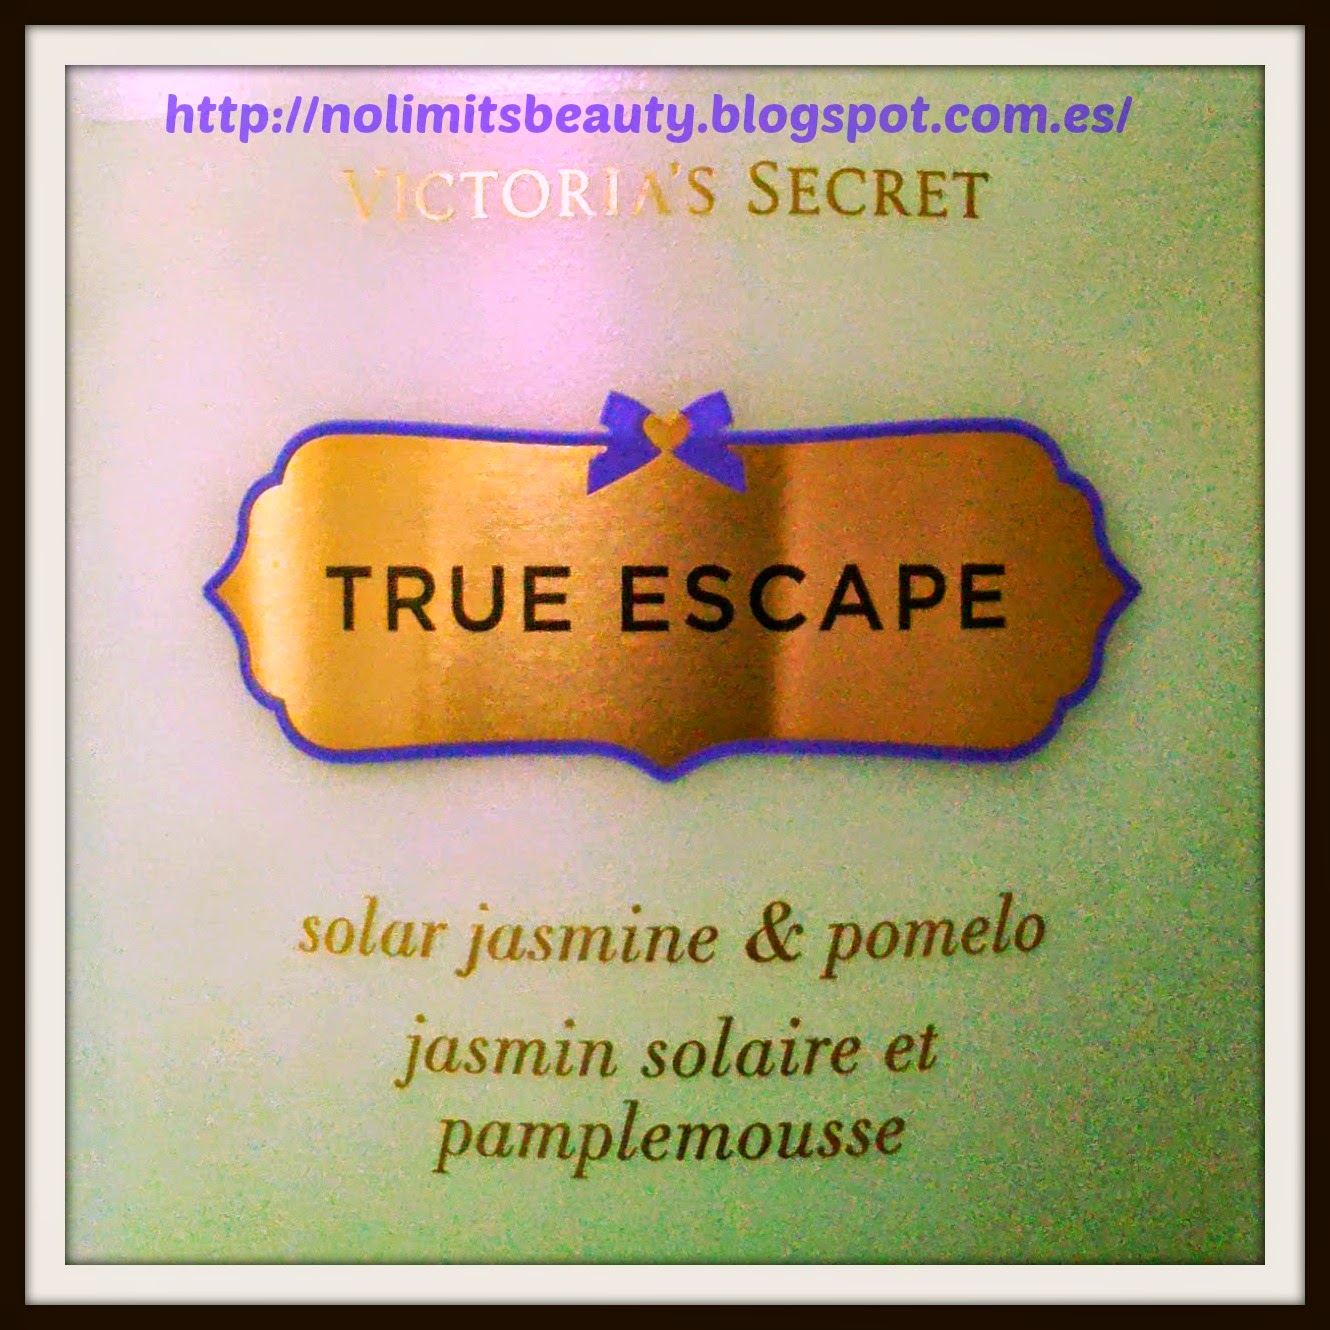 True Escape de Victoria's Secret: review